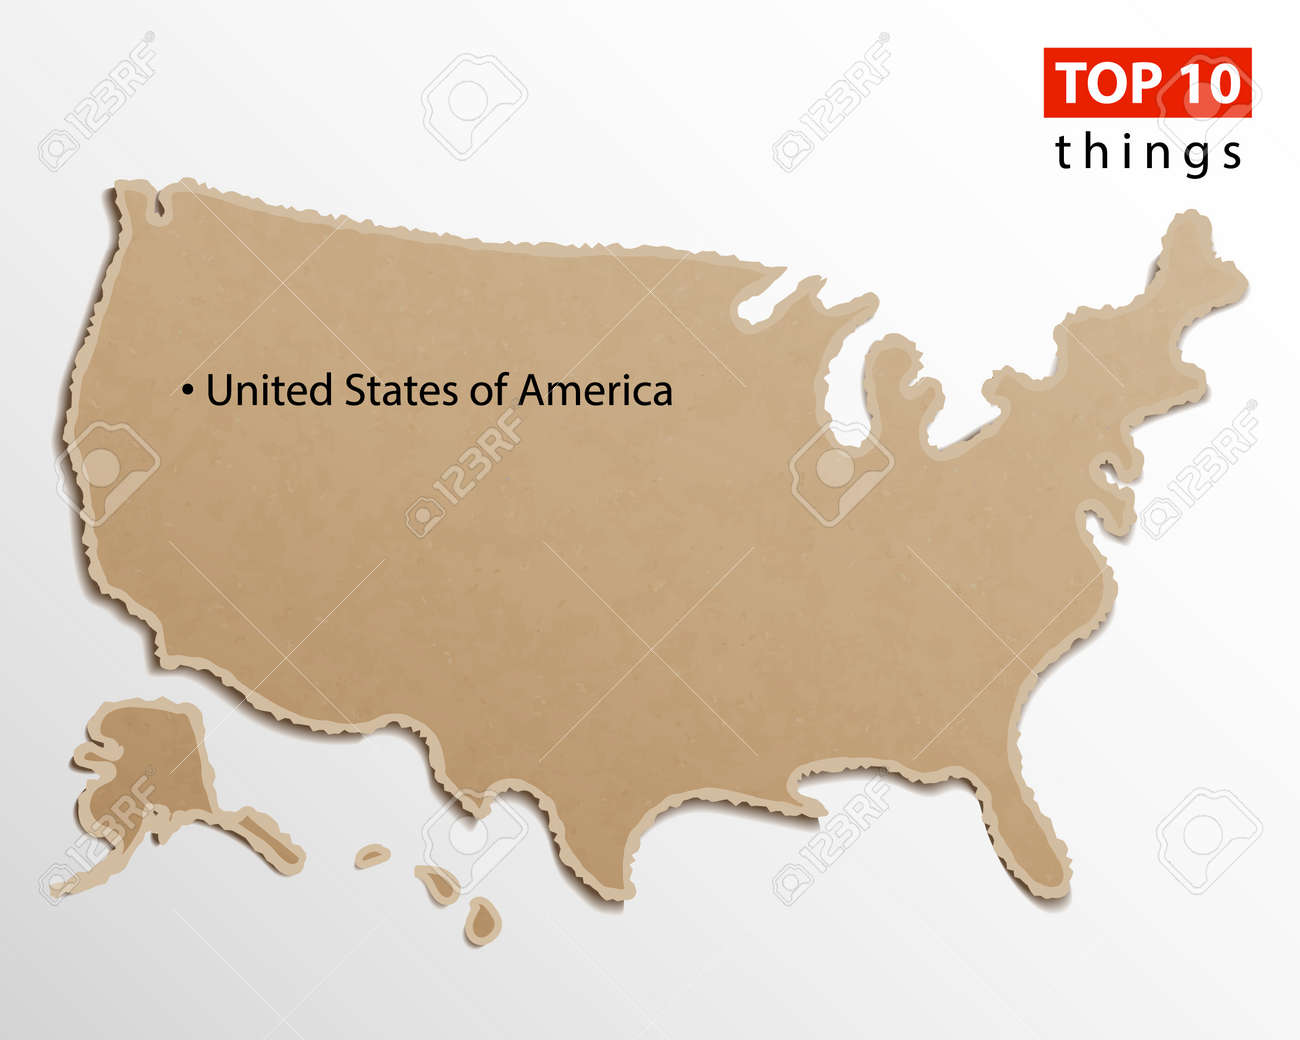 United States of America map vector  USA maps craft paper texture